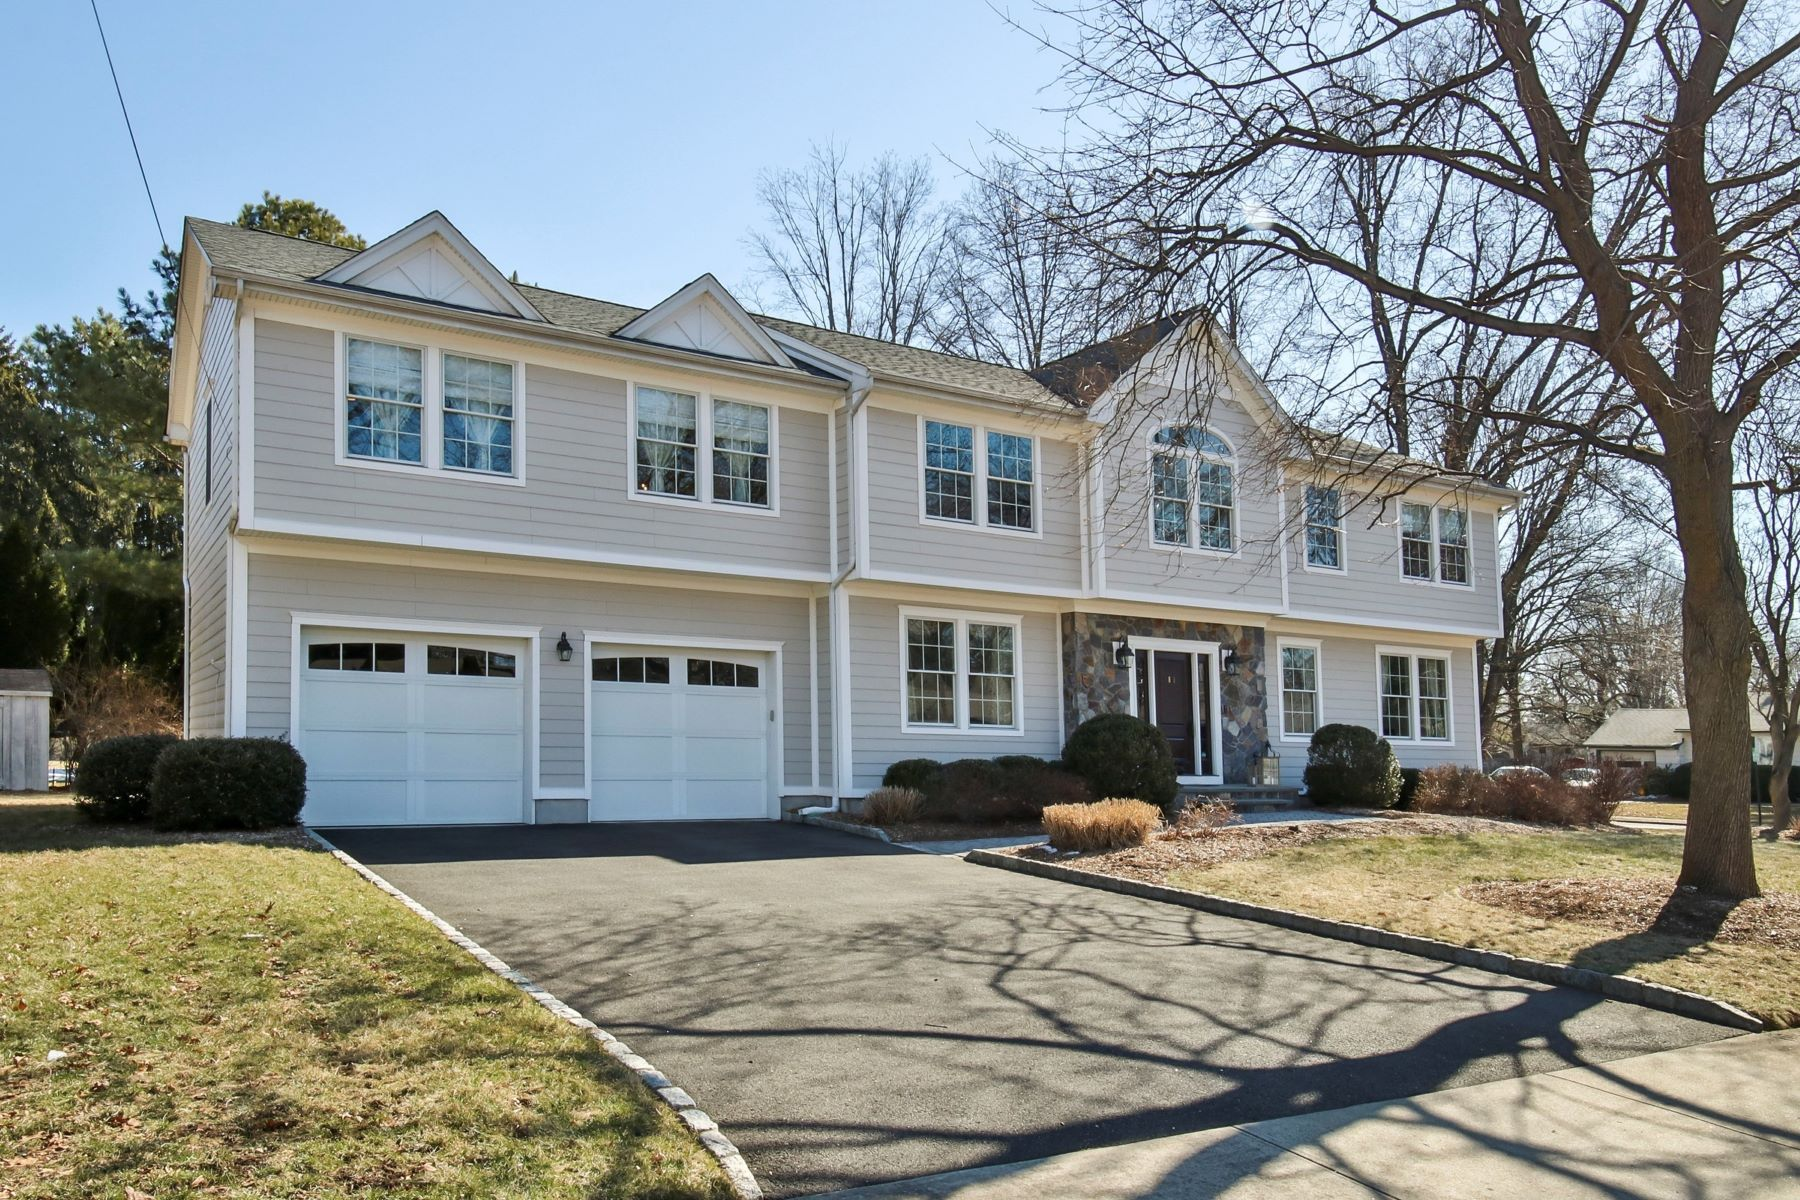 Single Family Home for Sale at Center Hall Colonial 83 Charles Place, Old Tappan, New Jersey 07675 United States